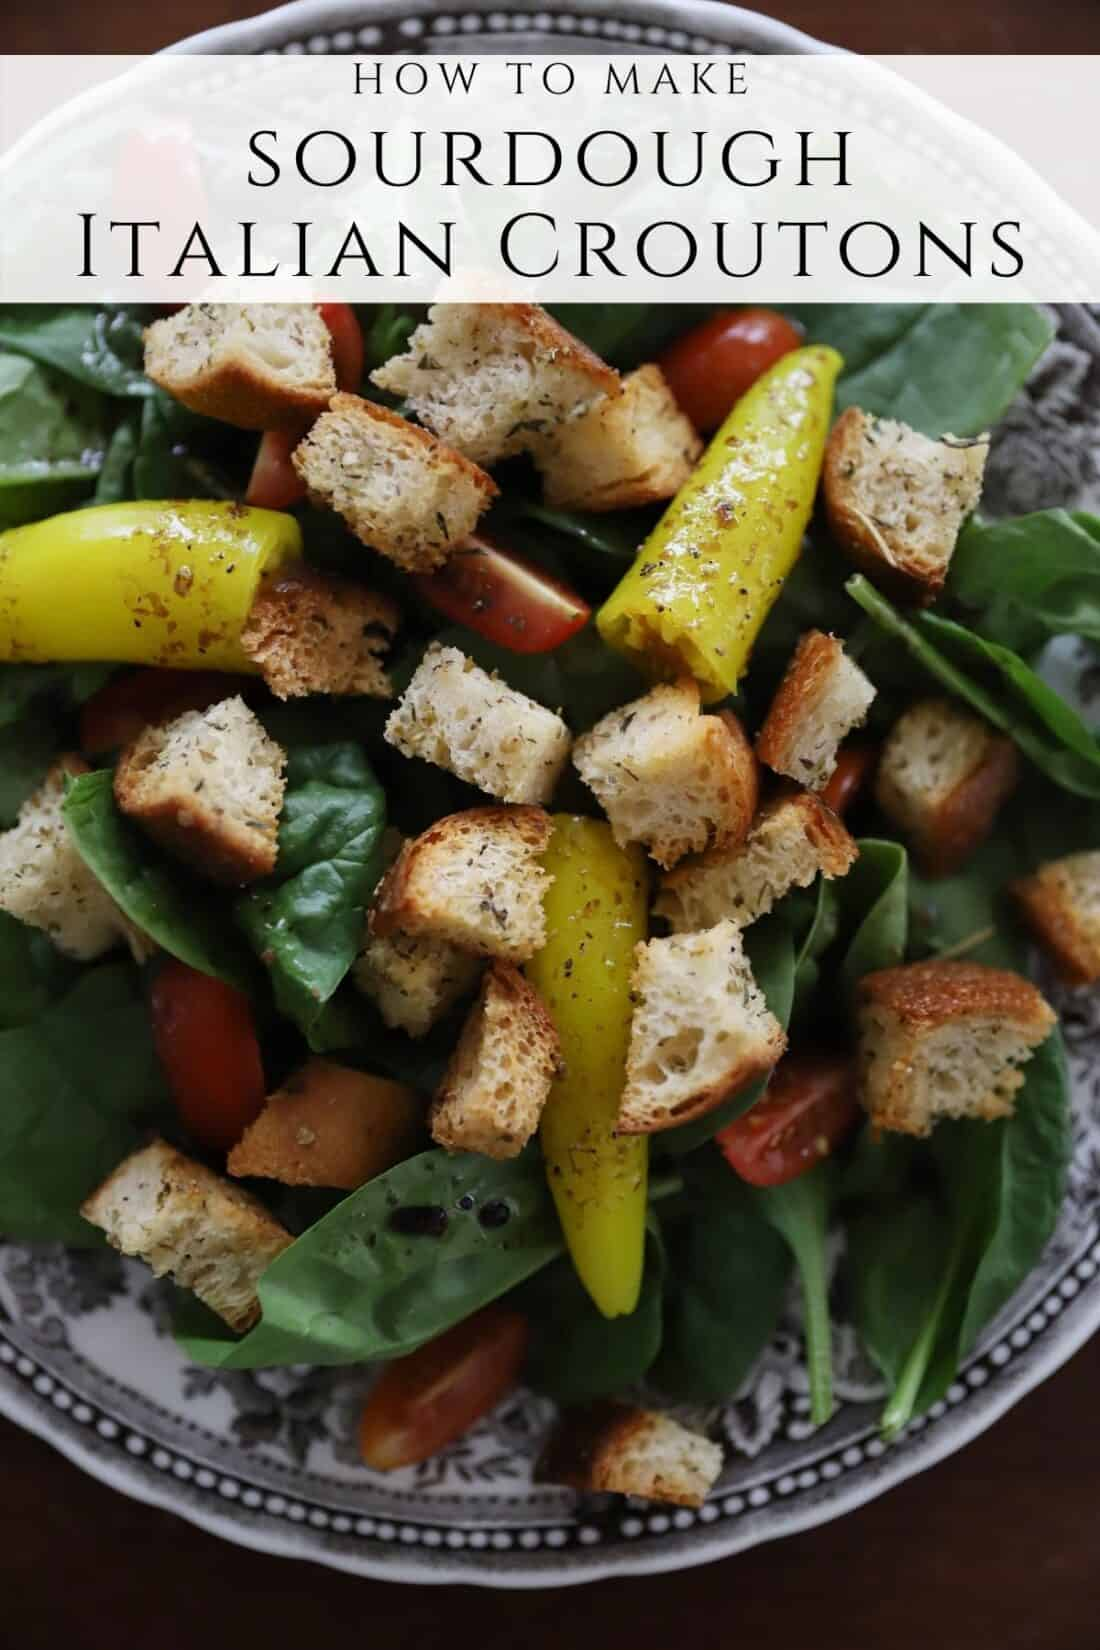 easy sourdough italian croutons from scratch on a brown and white plate